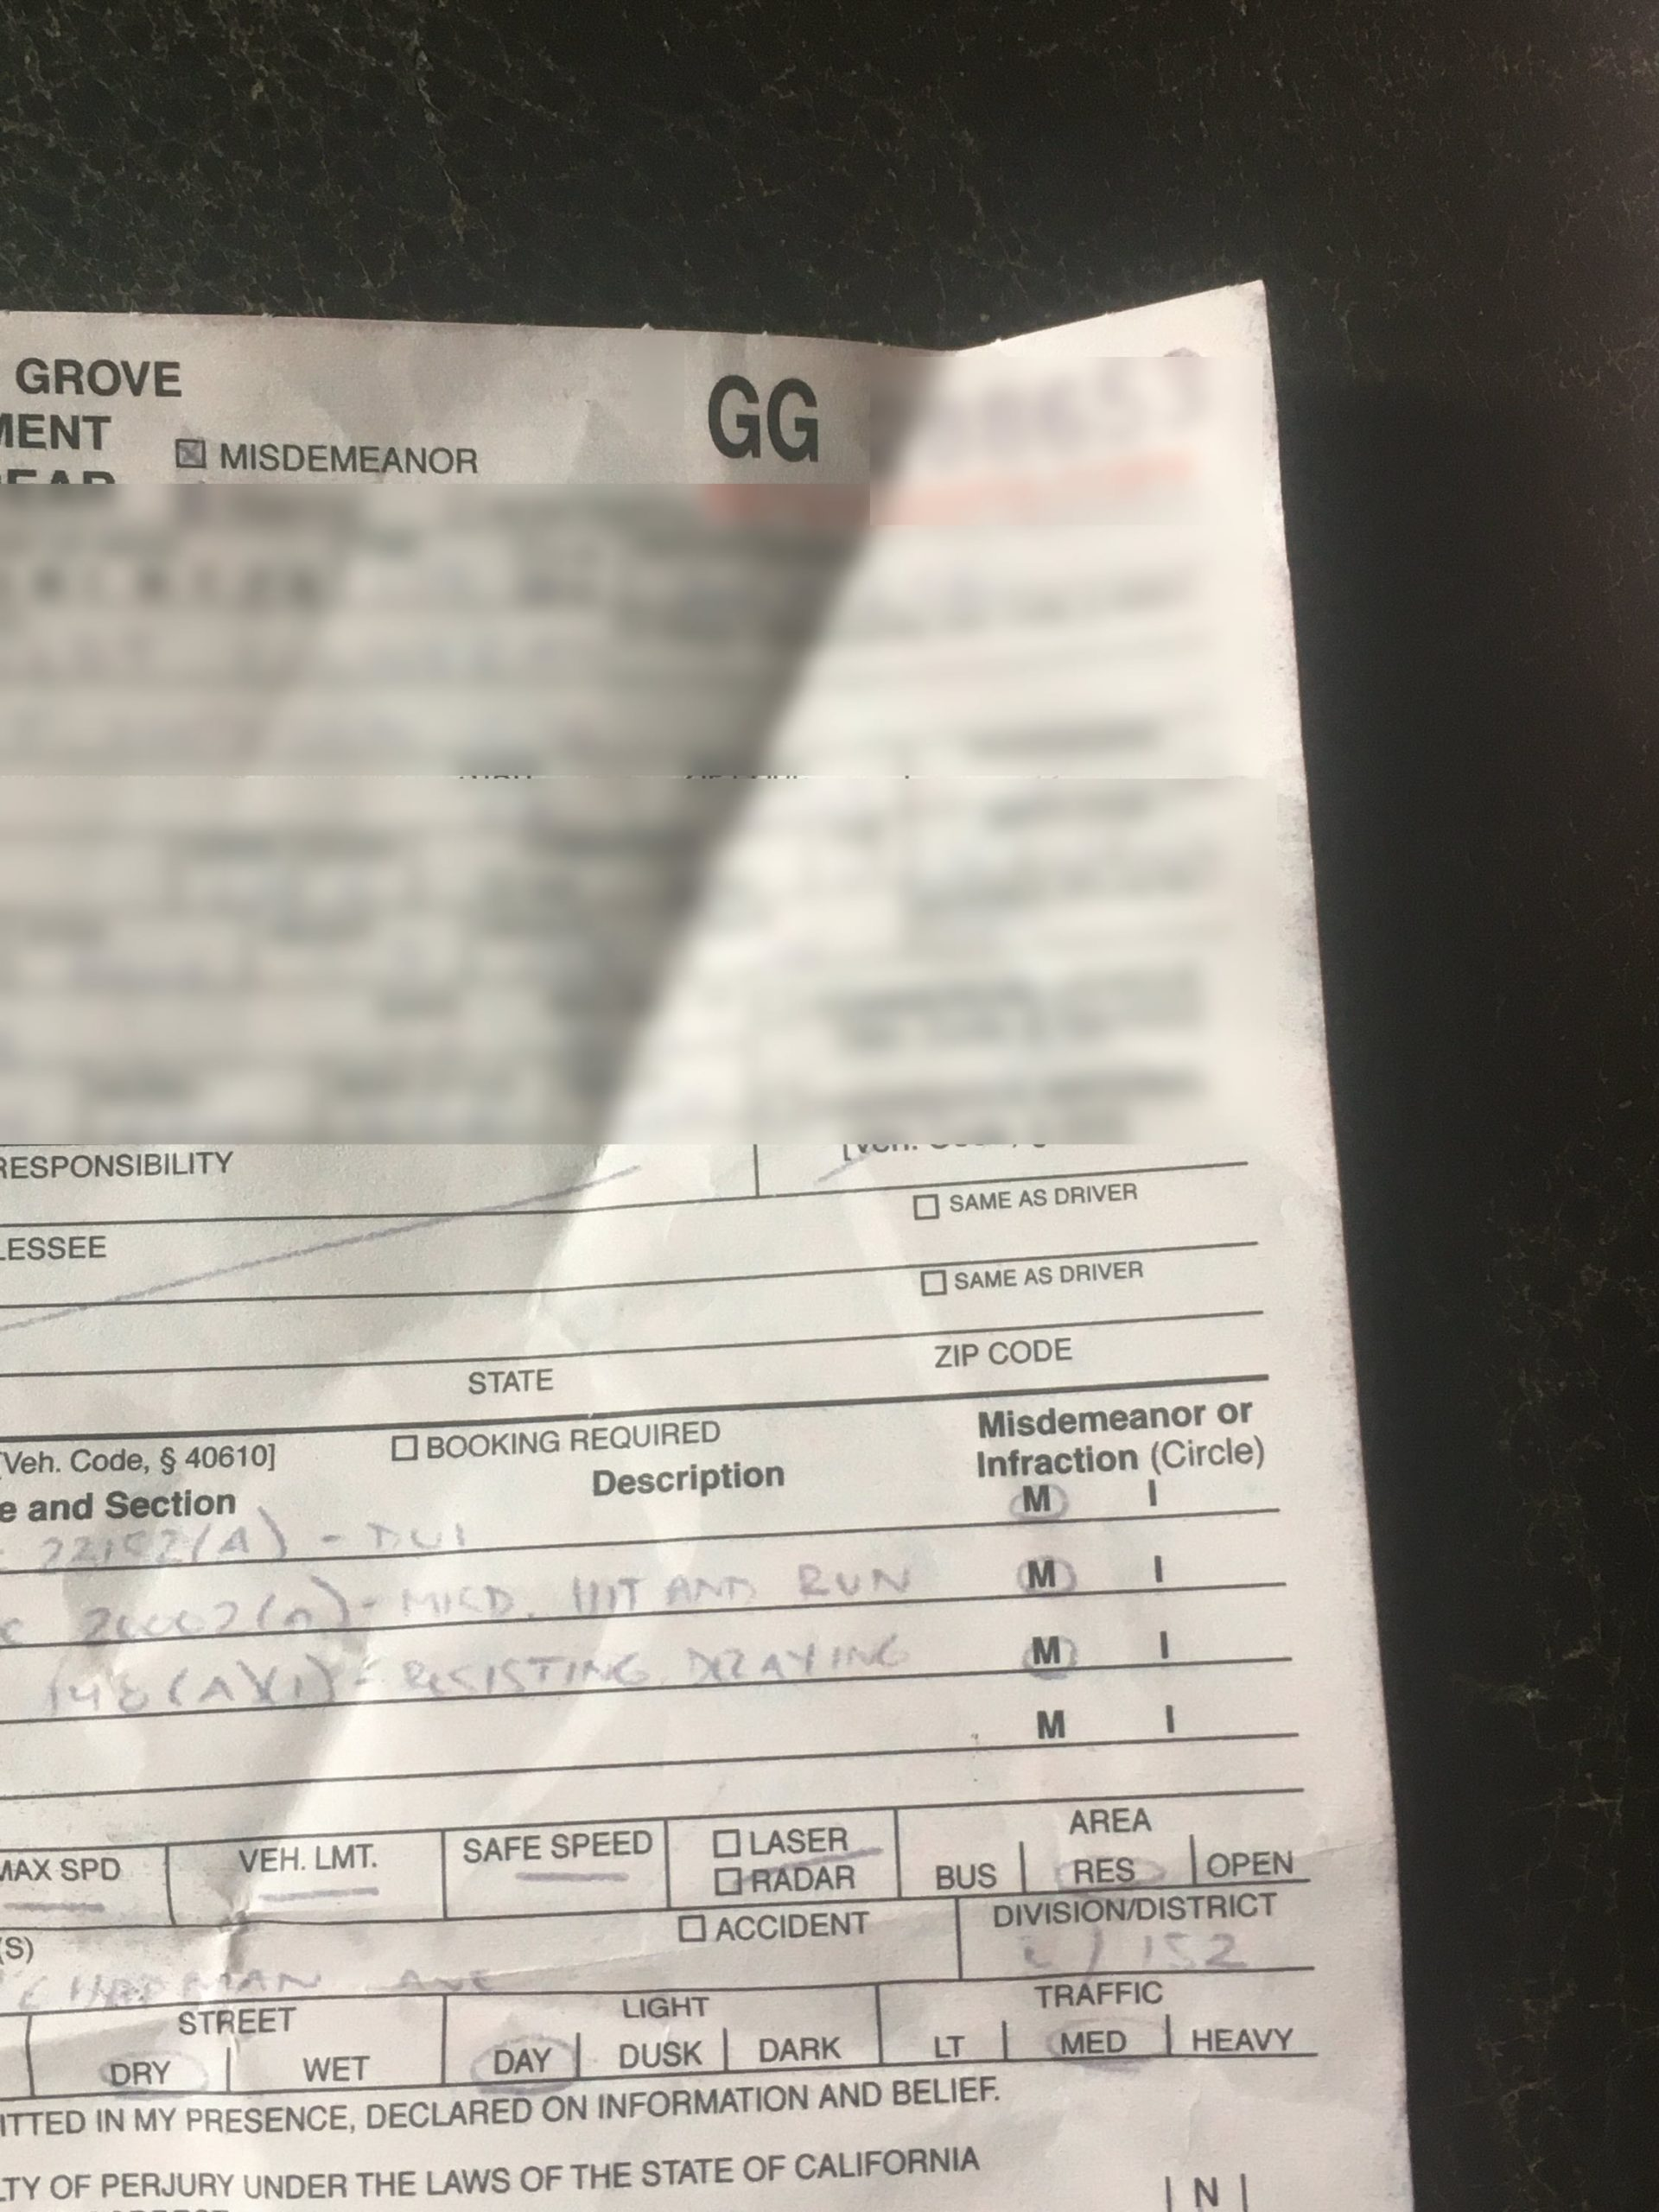 shows a citation by Garden Grove police department for a California Penal Code 148 arrest